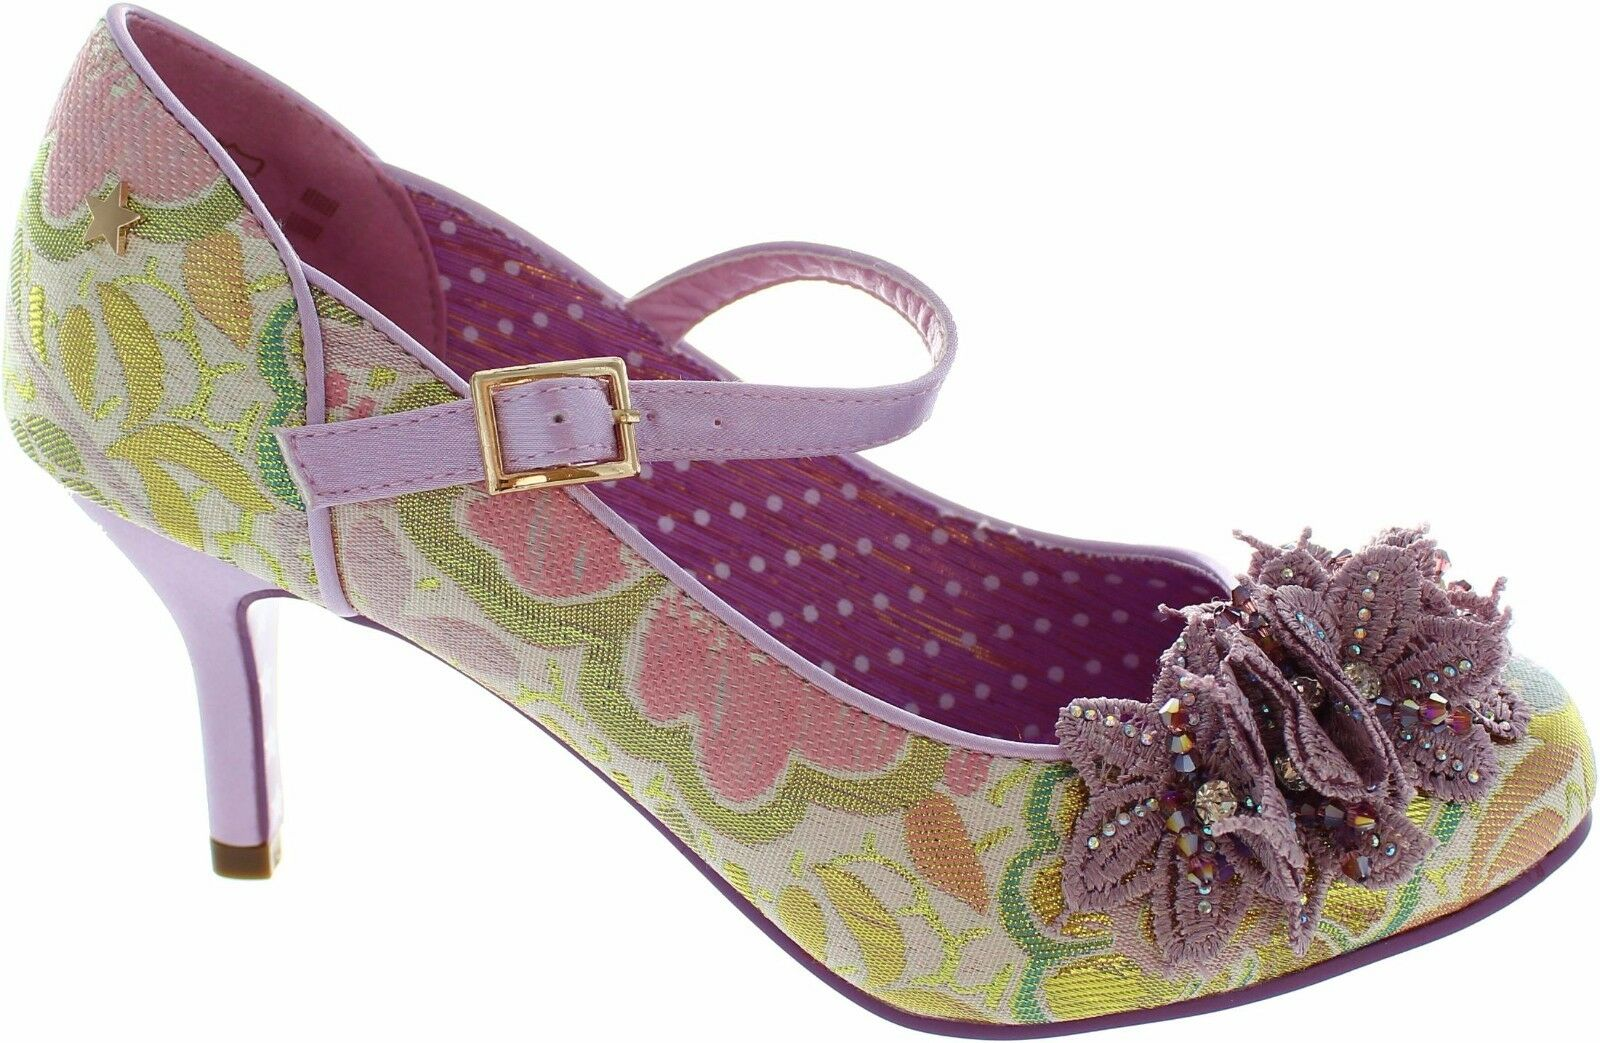 WOMENS Joe Browns Pink Purple Floral Ginnie High Heels Heels Heels shoes Ankle Boots New In 7e2d5d